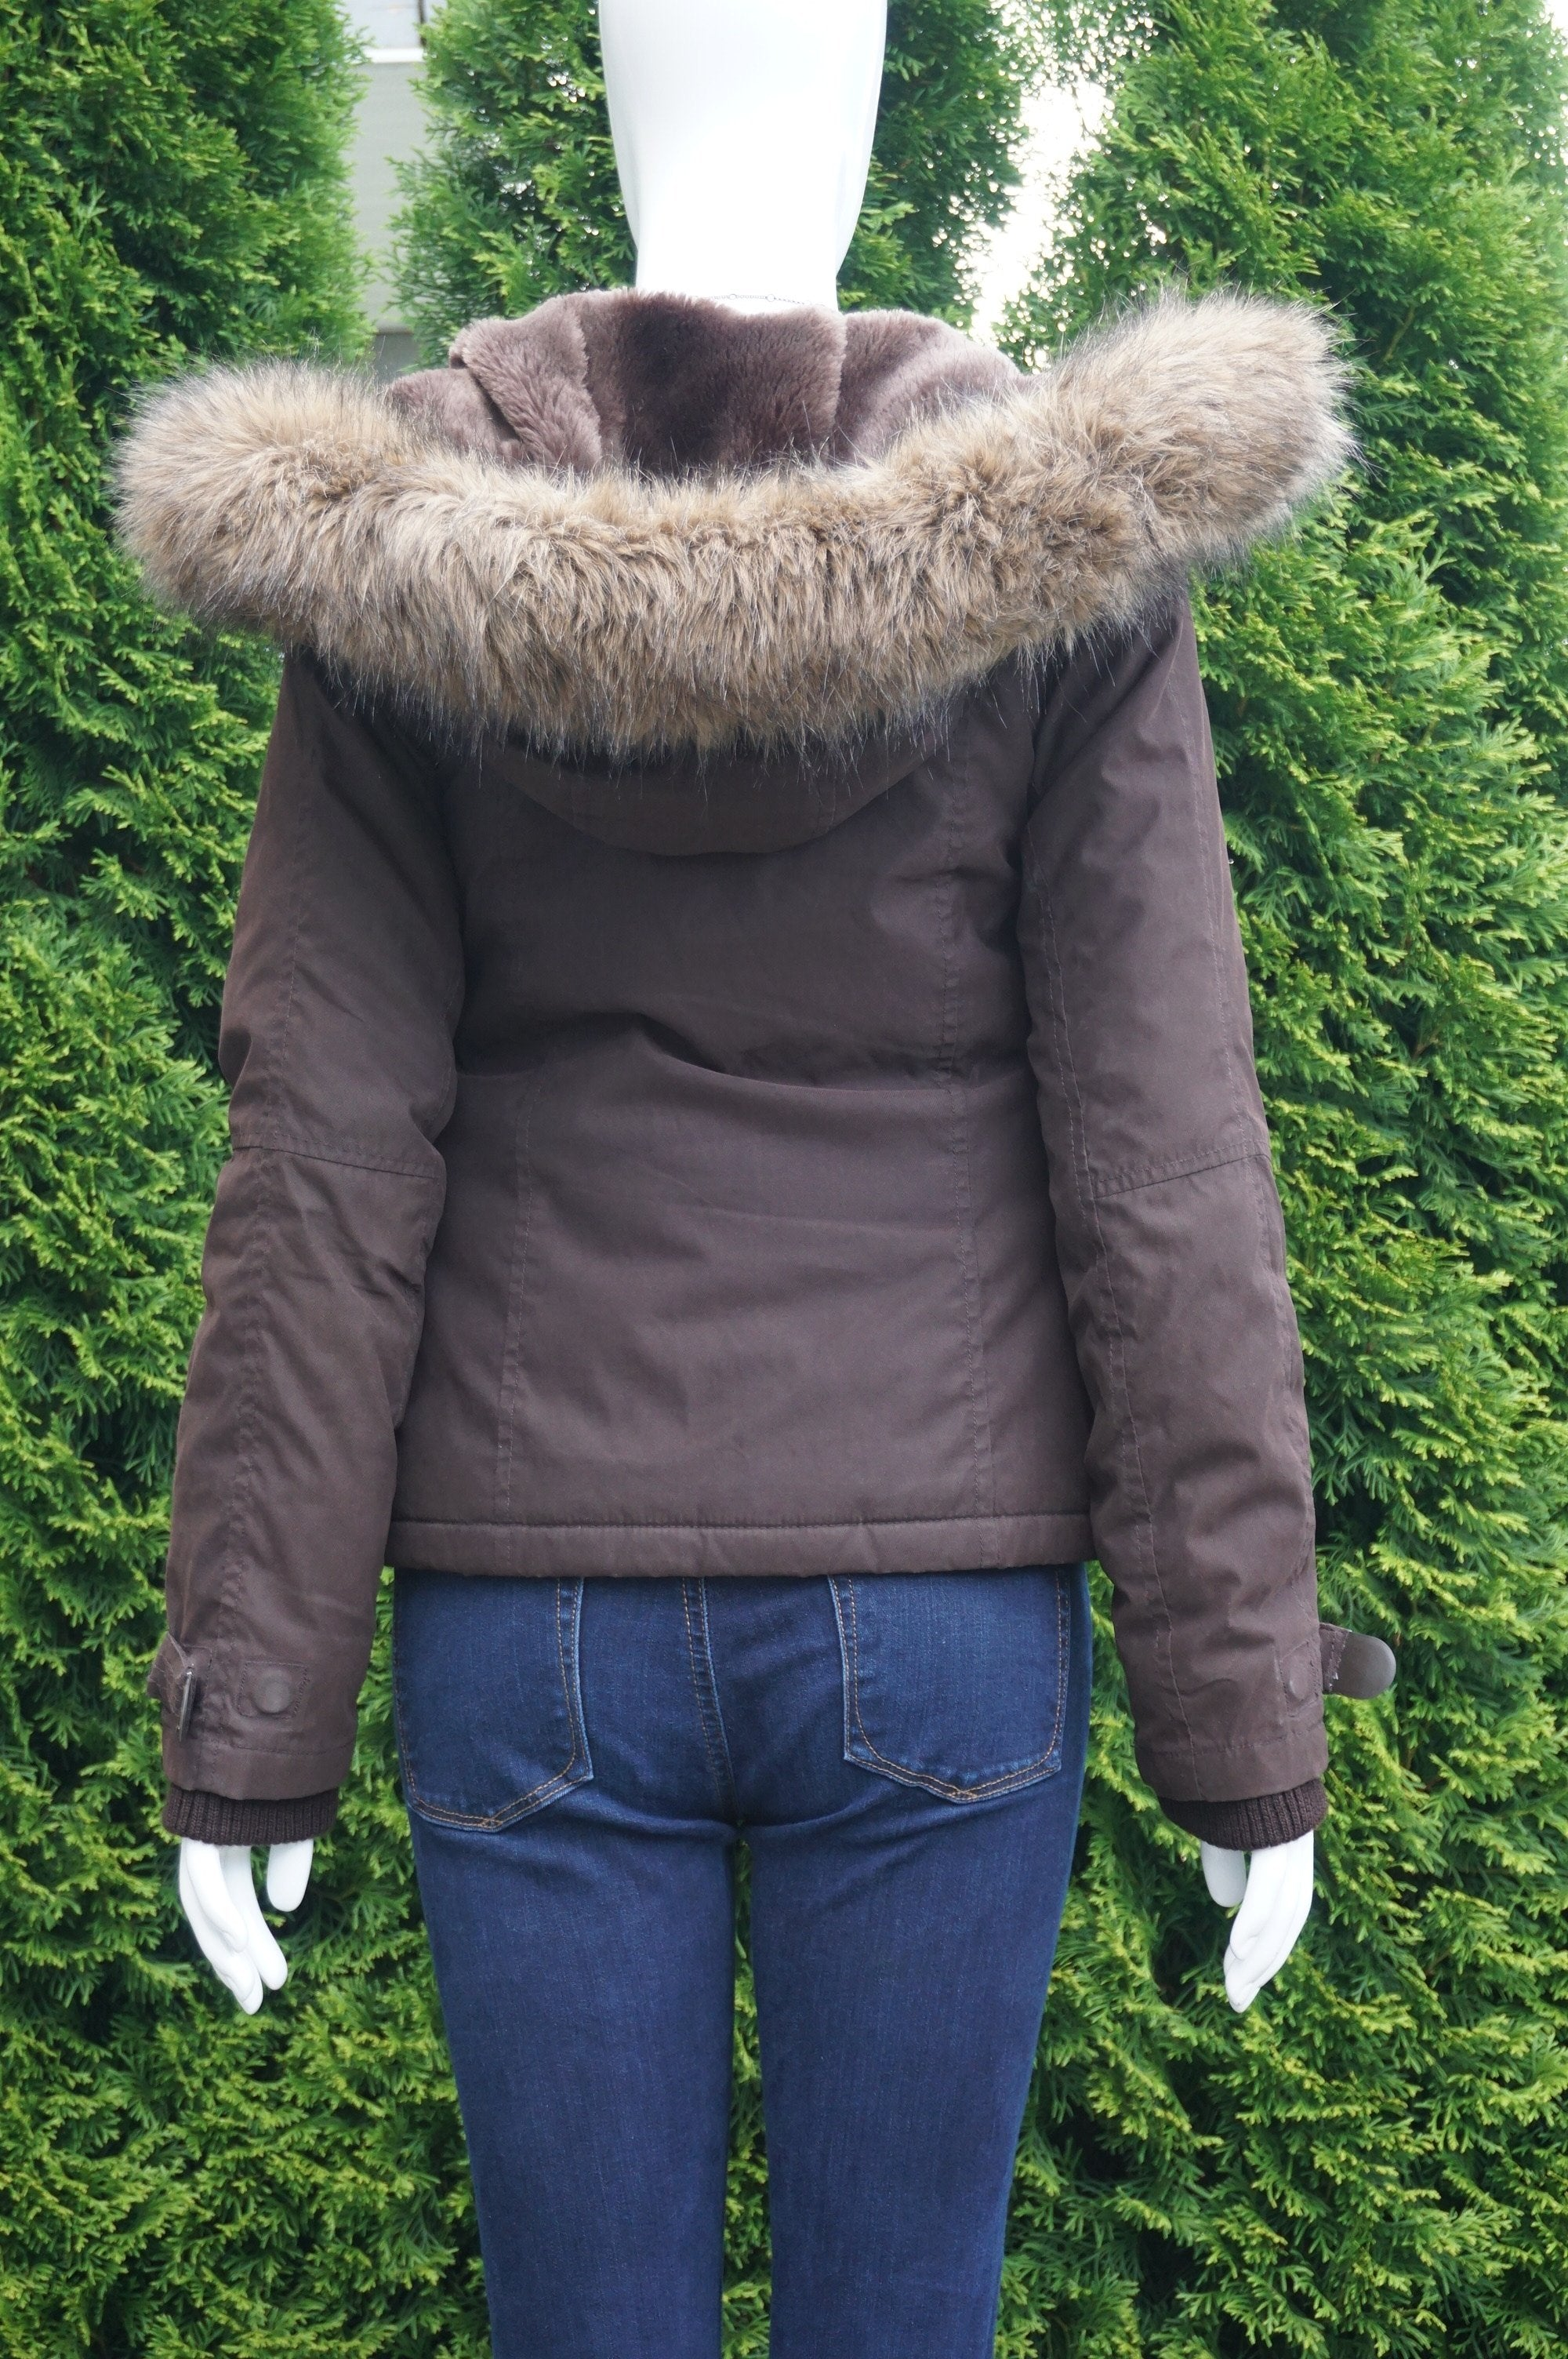 TNA Super warm hooded winter jacket, Bust 36 inches, waist 30 inches, length   inches. Signs of wearing at trims but all zippers and buttons work well. Removable faux fur hood. , Brown, Exterior: 88% Polyester, 12% Nylon. Backing: 100% Polyurethane. Upper lining: 100% Polyester, Lower Body and sleeve lining|: 100% Nylon. Filling 100% Polyester. , women's Jackets & Coats, women's Brown Jackets & Coats, TNA women's Jackets & Coats, Warm winter jacket, TNA jacket, hooded jacket,